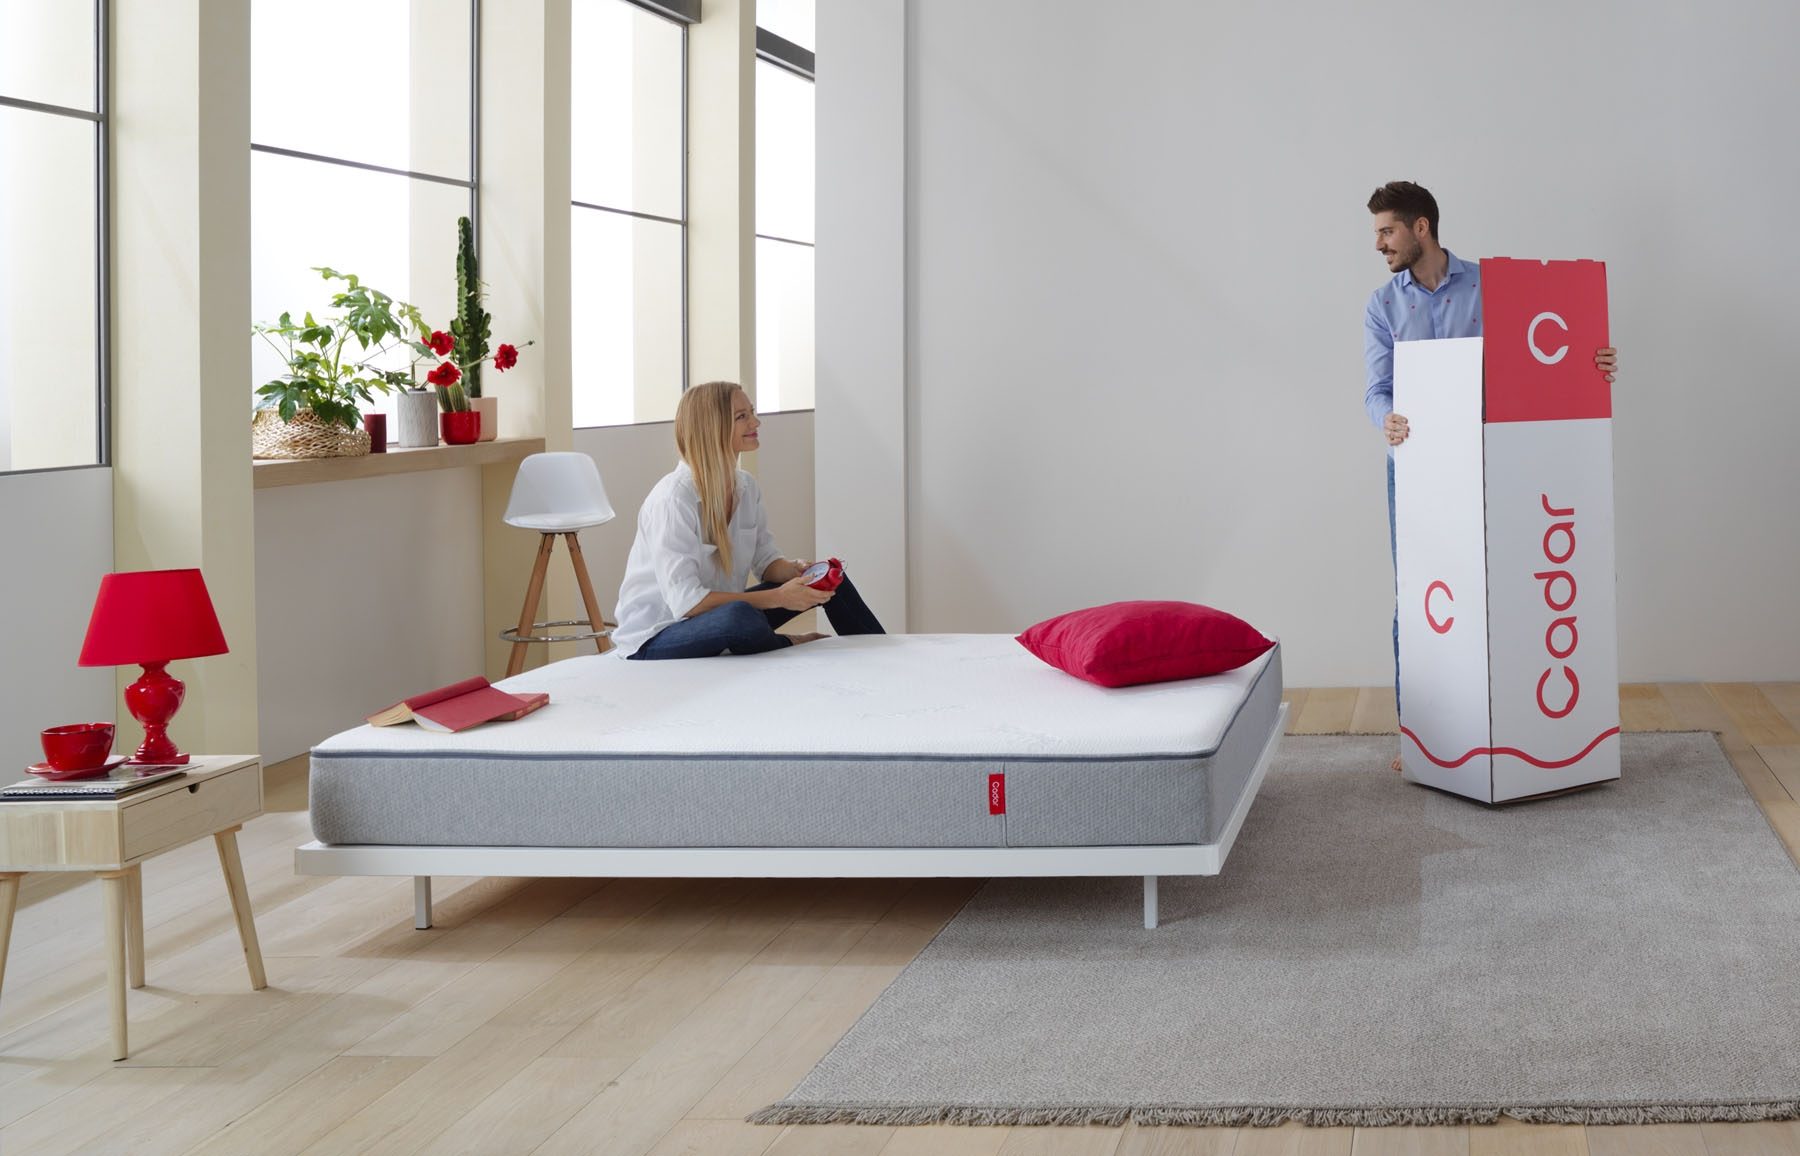 Saltea Cadar The Mattress Spuma Hr Graphite Memory Saltele Ilustratie